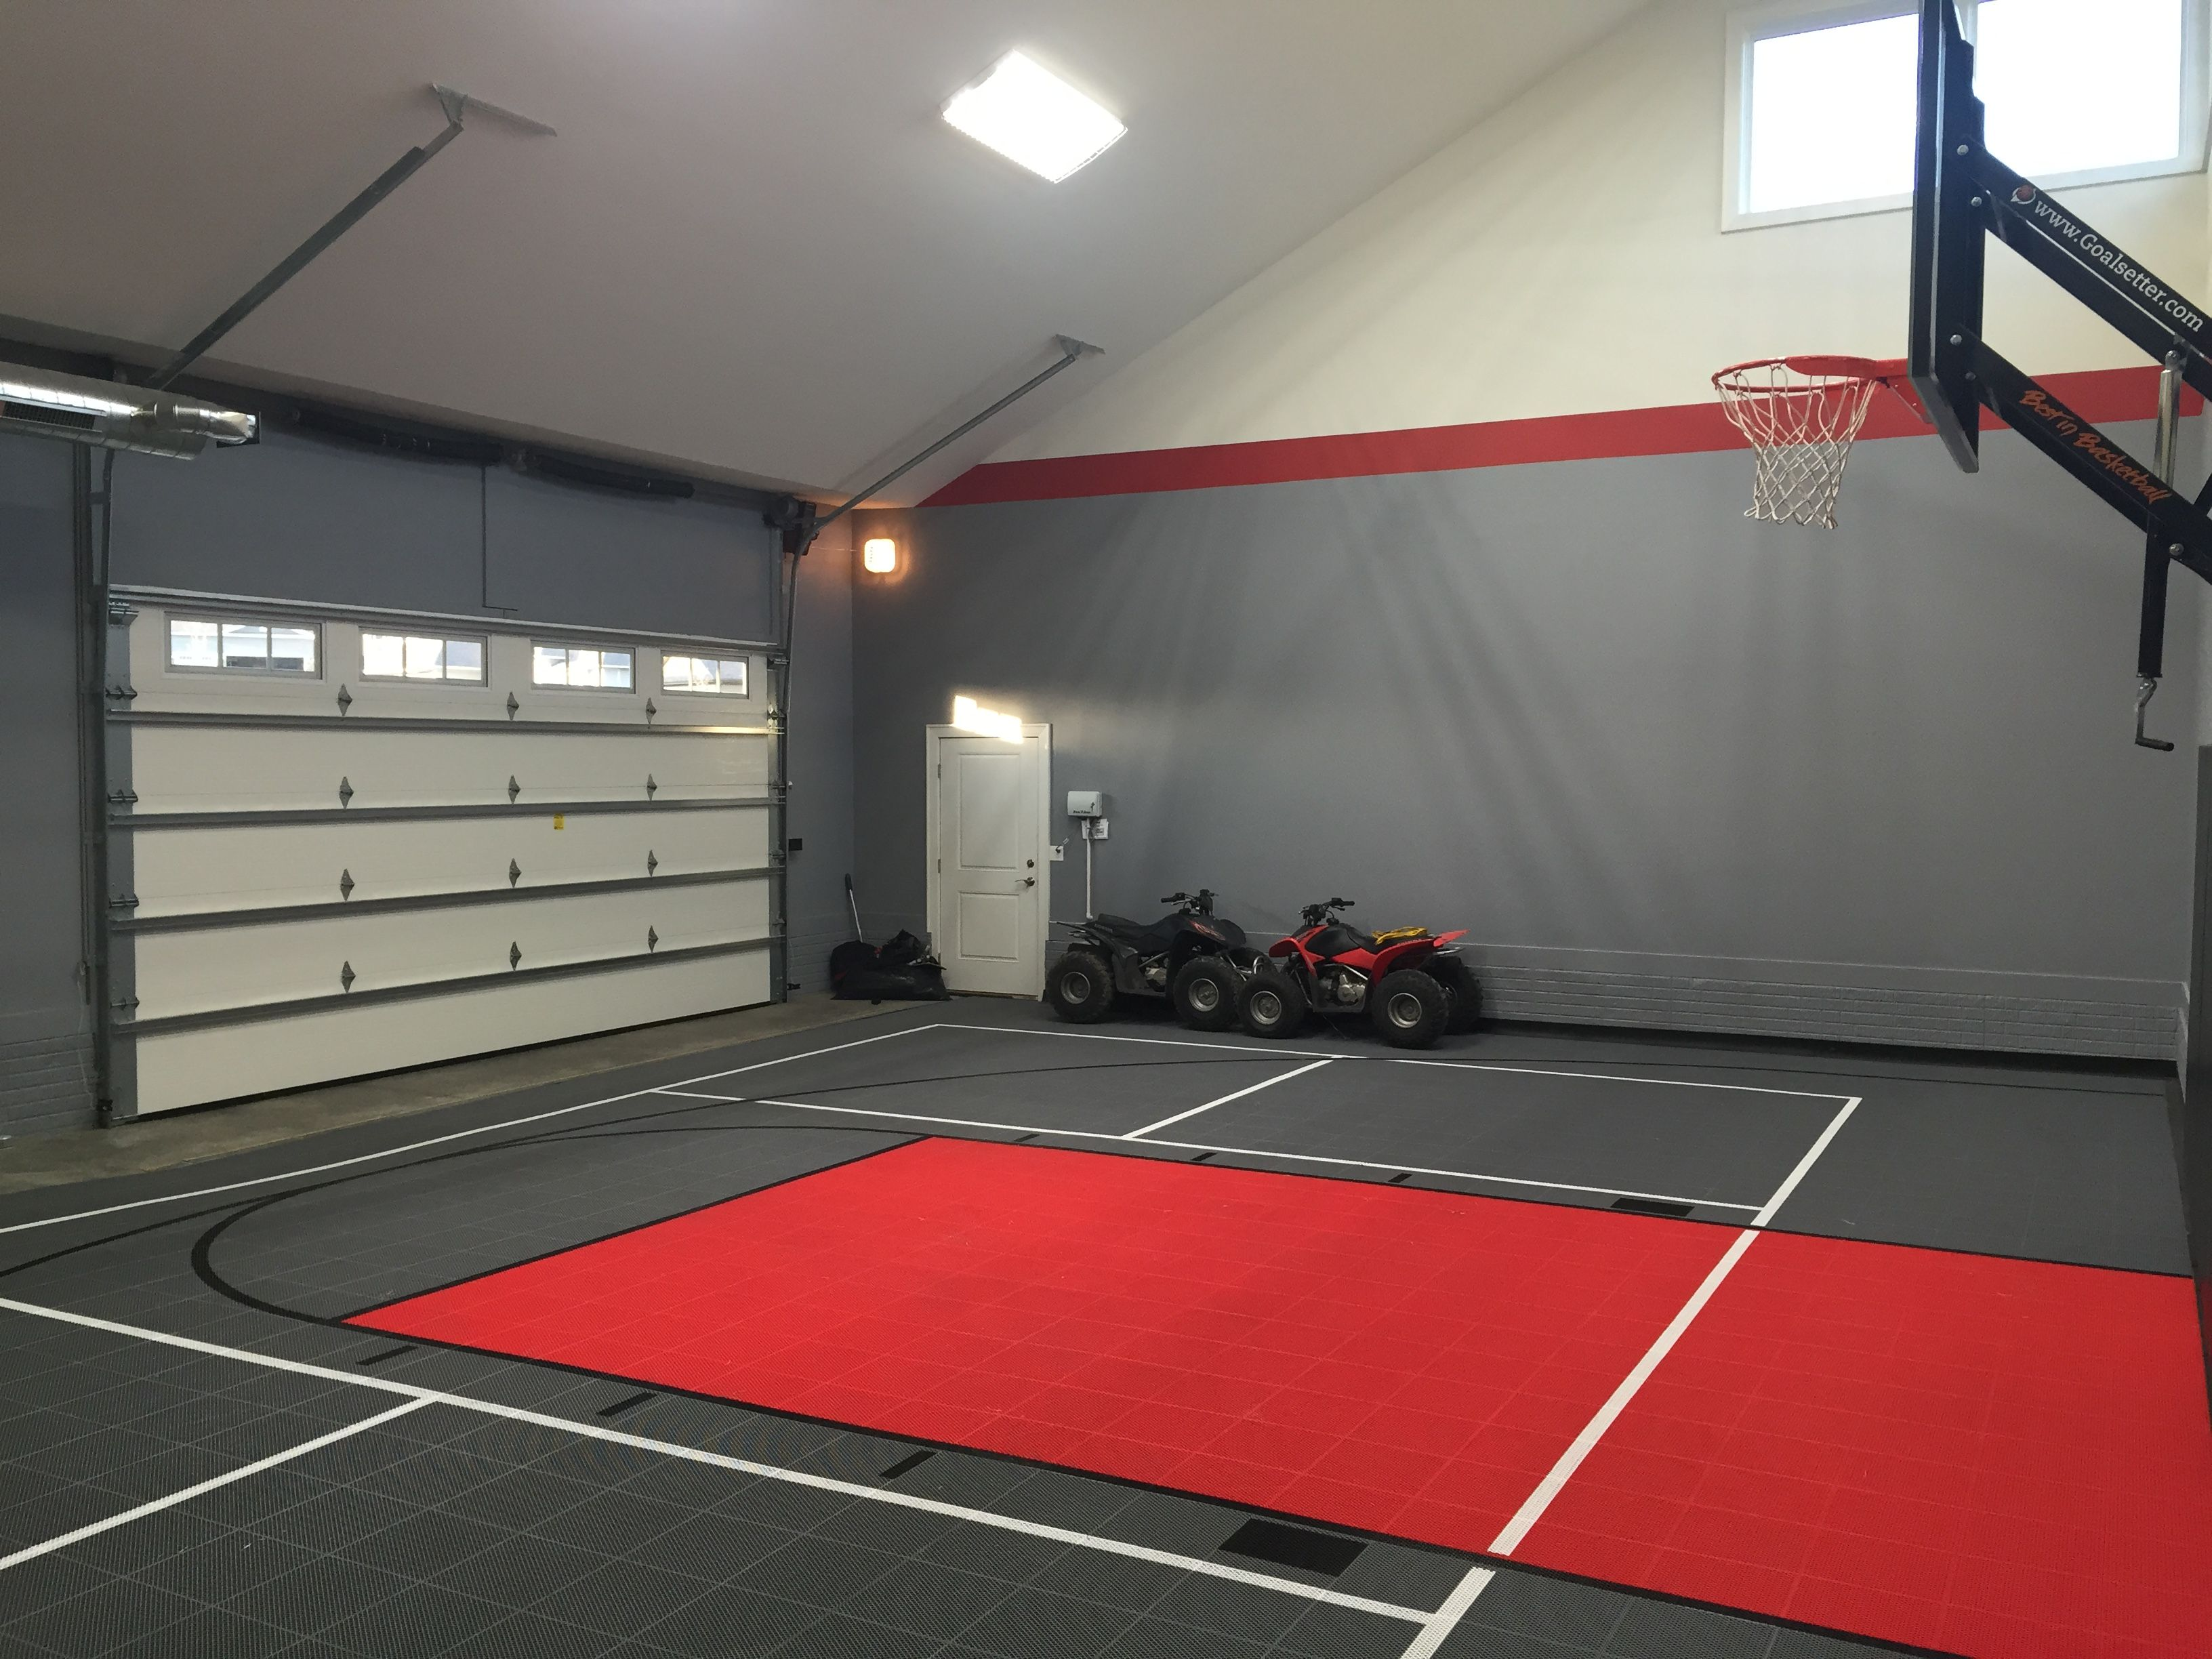 Garage Gym Sport Court Home Basketball Court Home Gym Garage Indoor Basketball Court